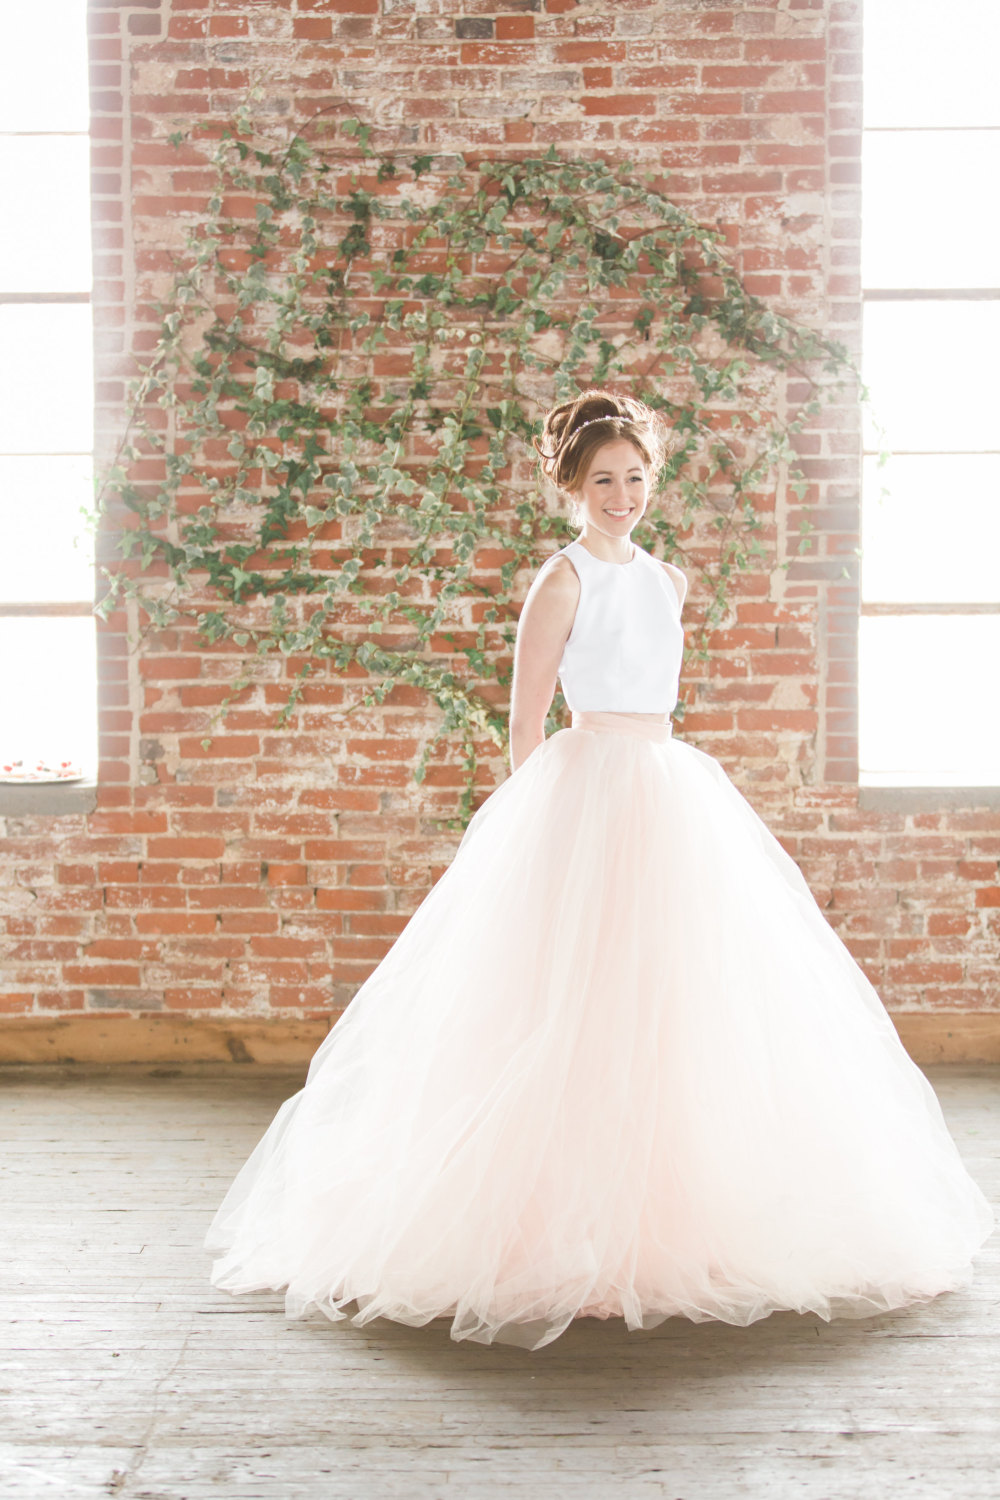 Train - Tulle Skirt - Tulle Wedding Dress - Colored Wedding Dress .jpg